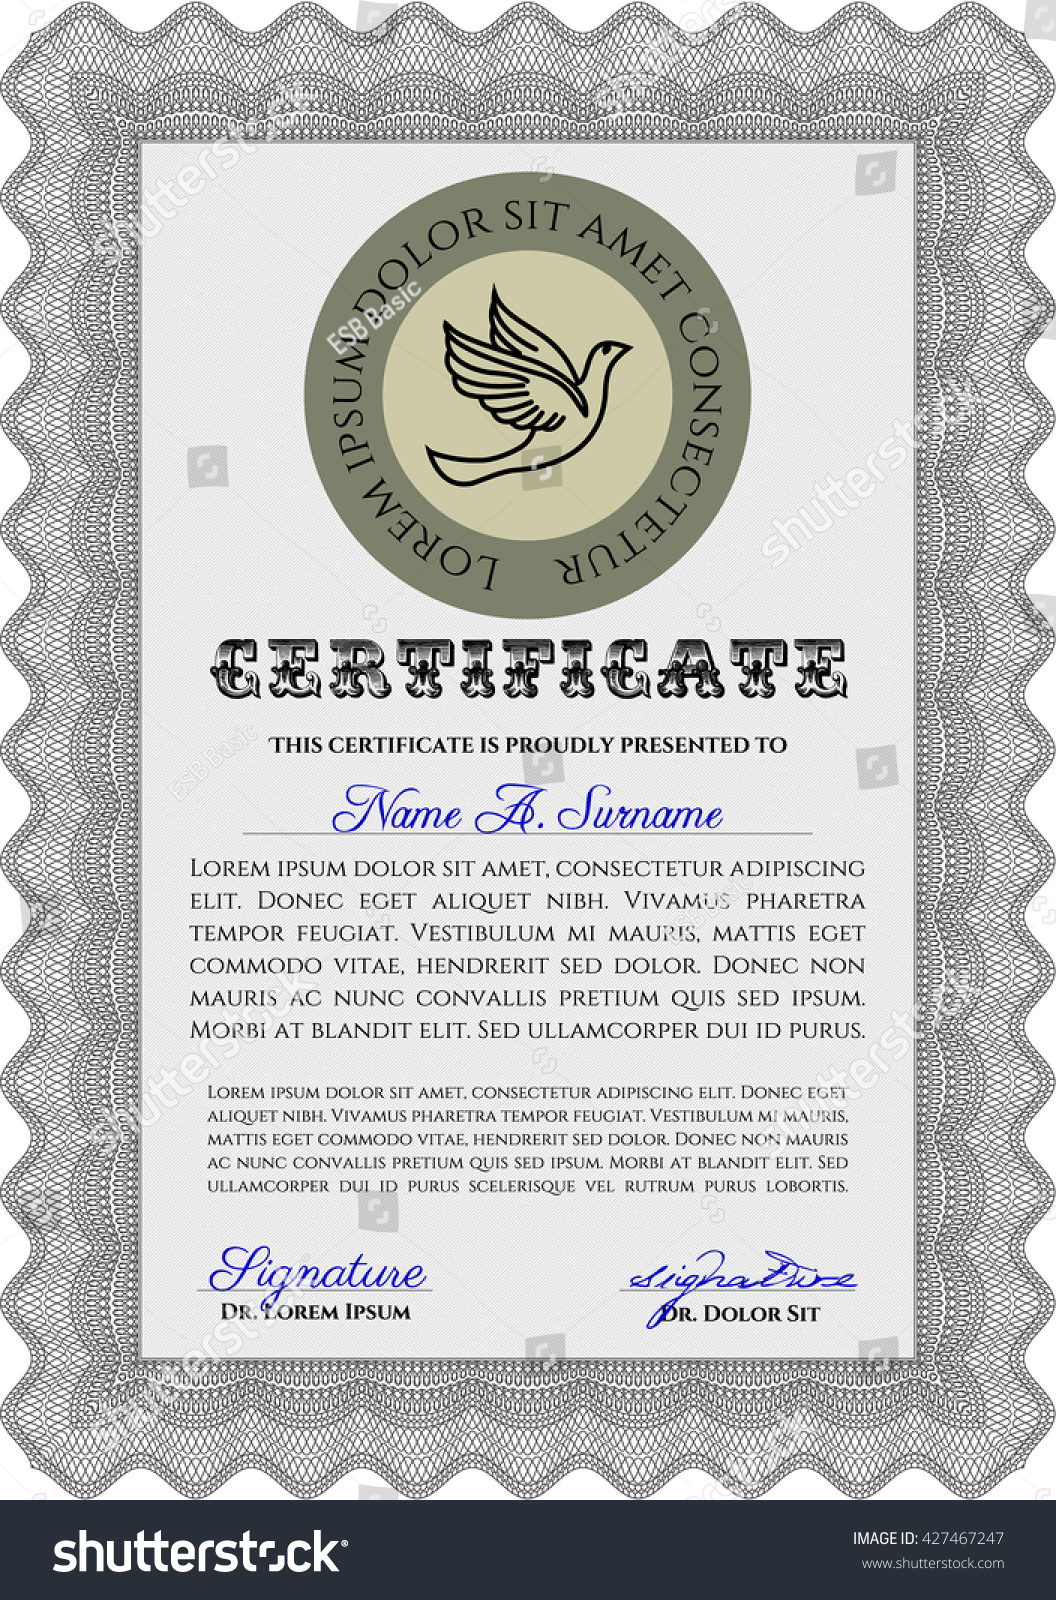 grey certificate template diploma template complex stock vector  grey certificate template or diploma template complex background beauty design vector pattern that